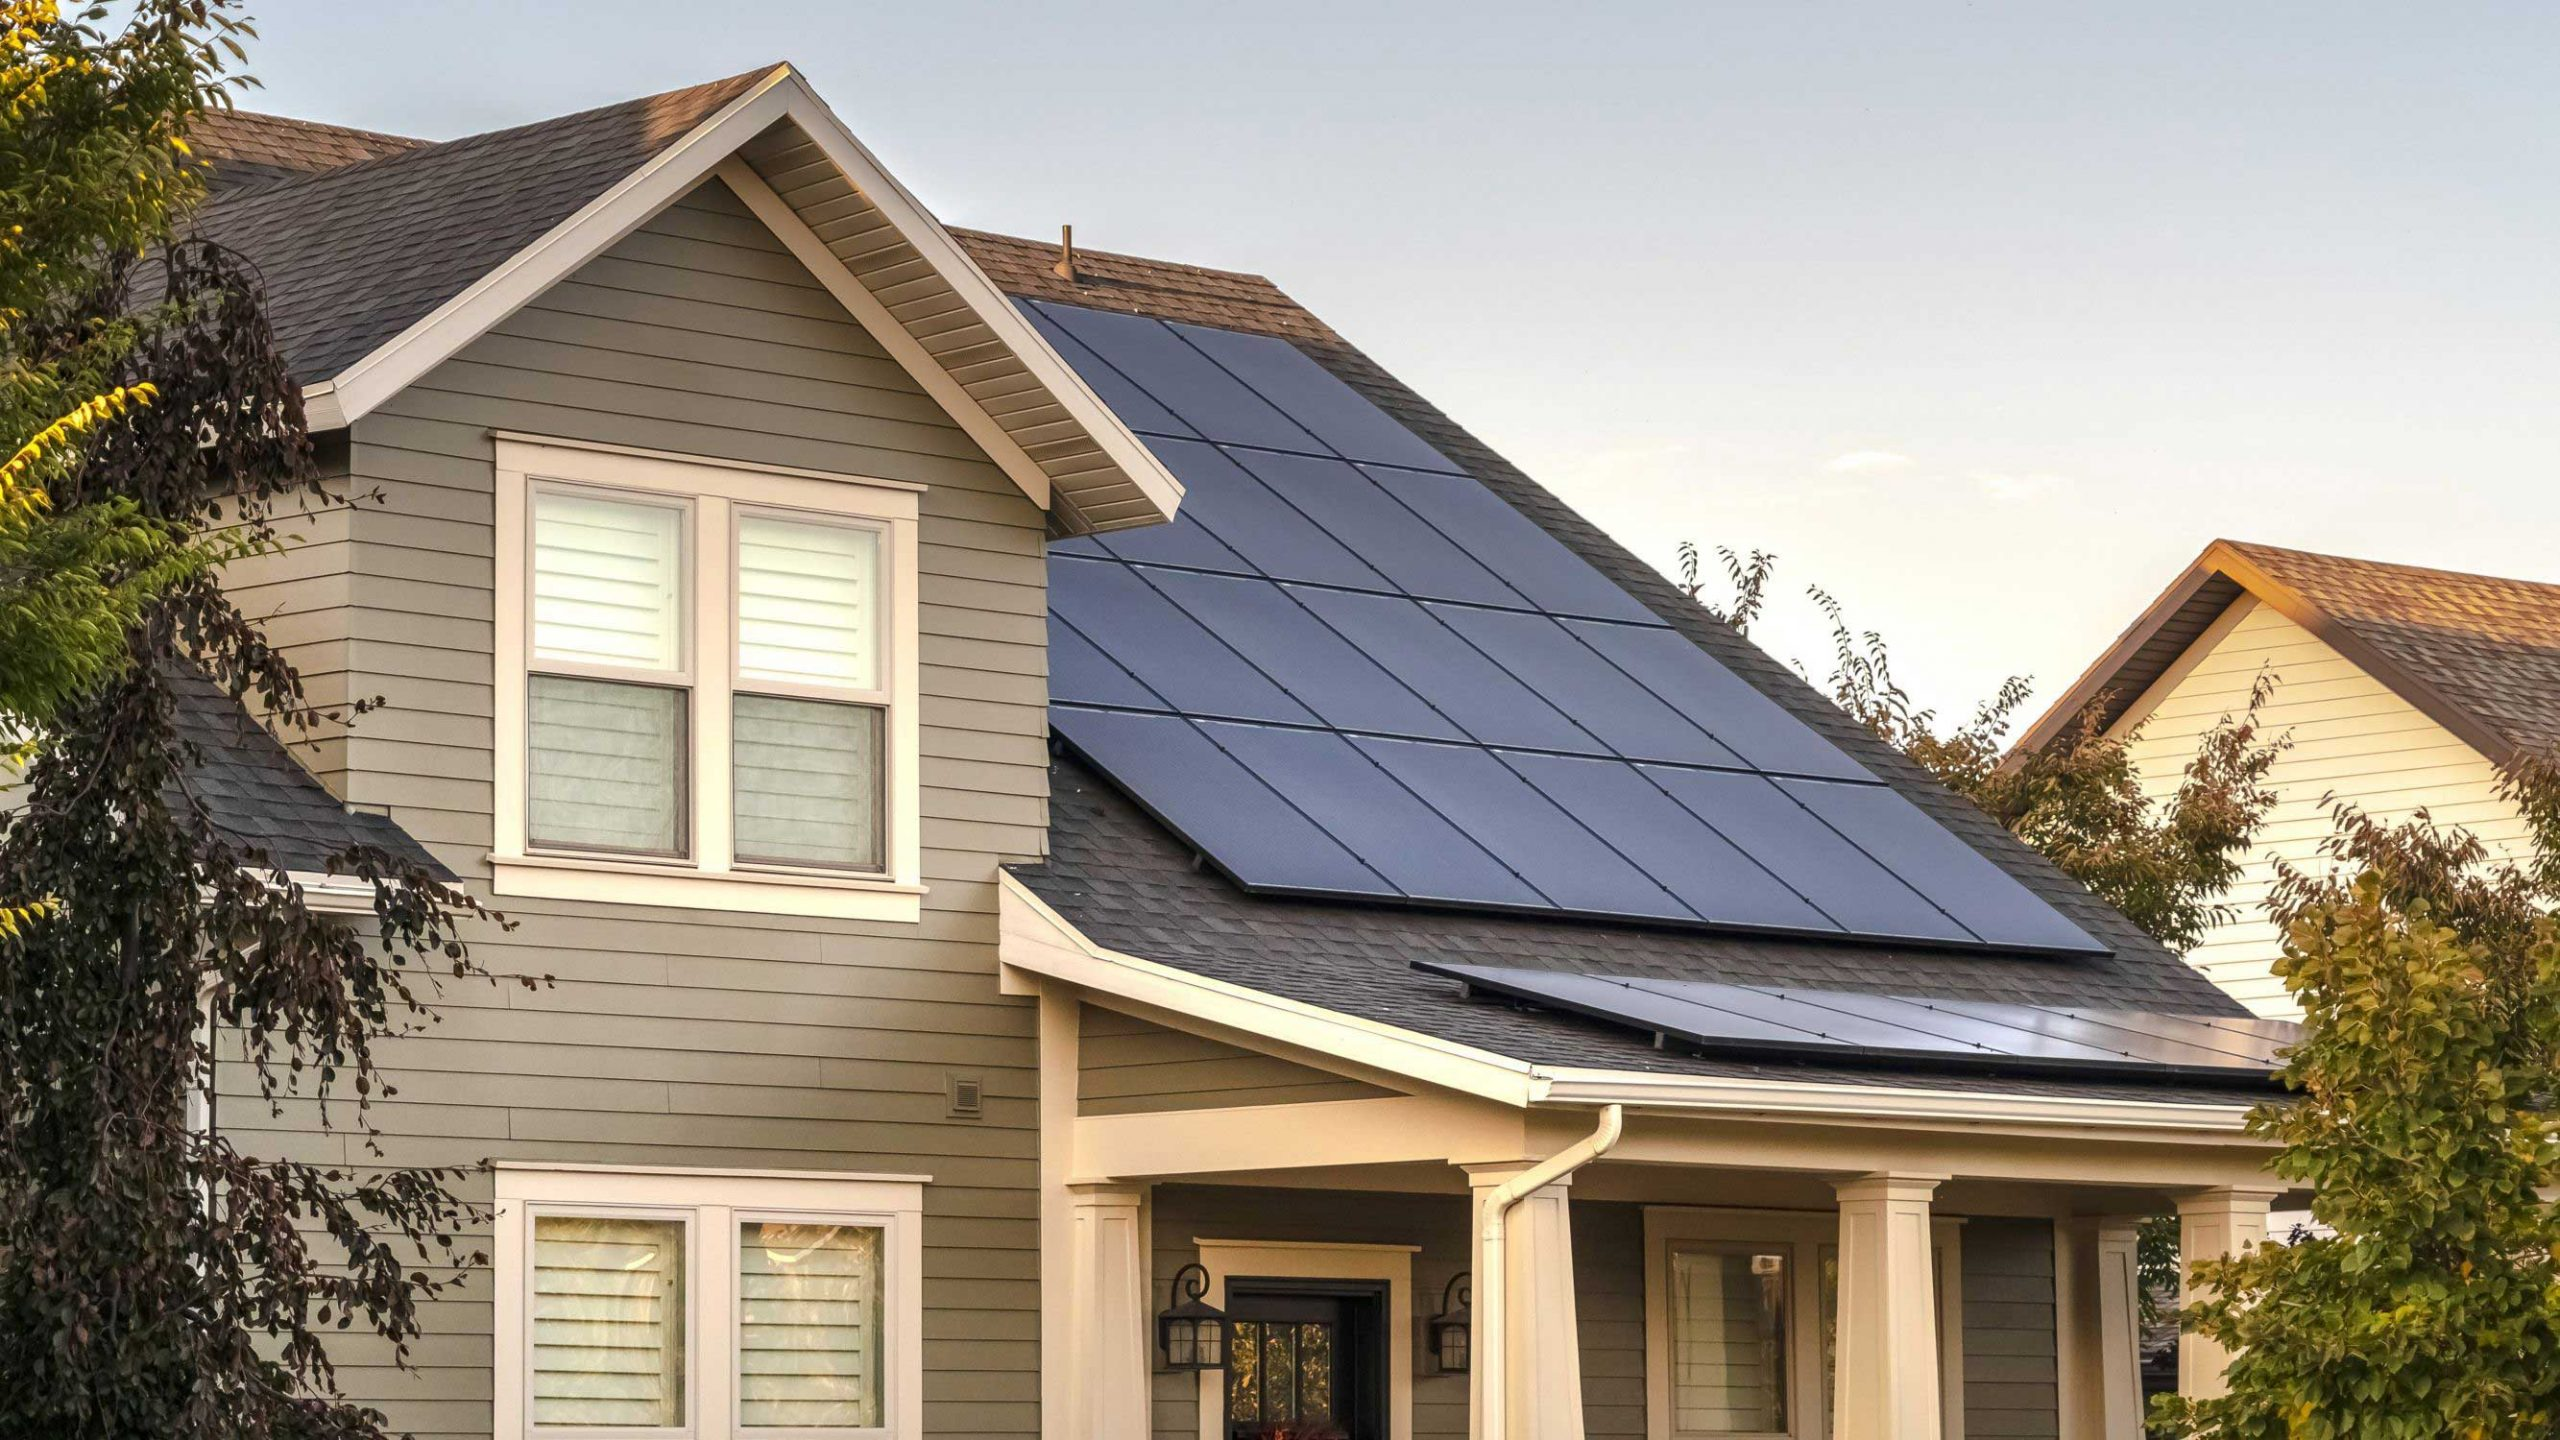 Is It Better to Buy or Lease Solar Panels?